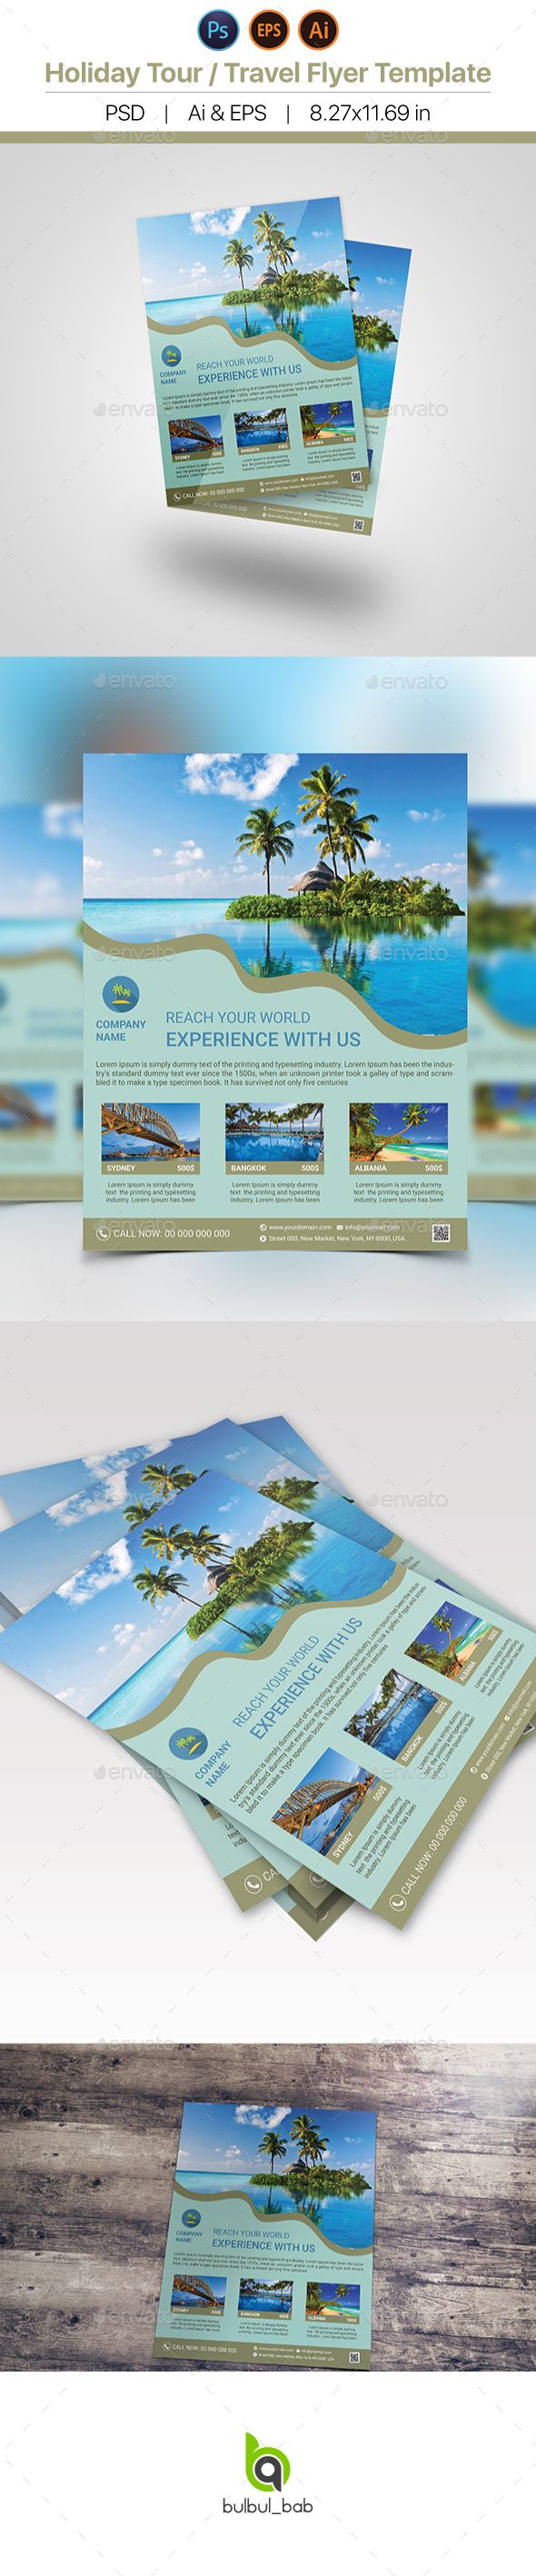 Holiday Travel Tour Flyer Template The